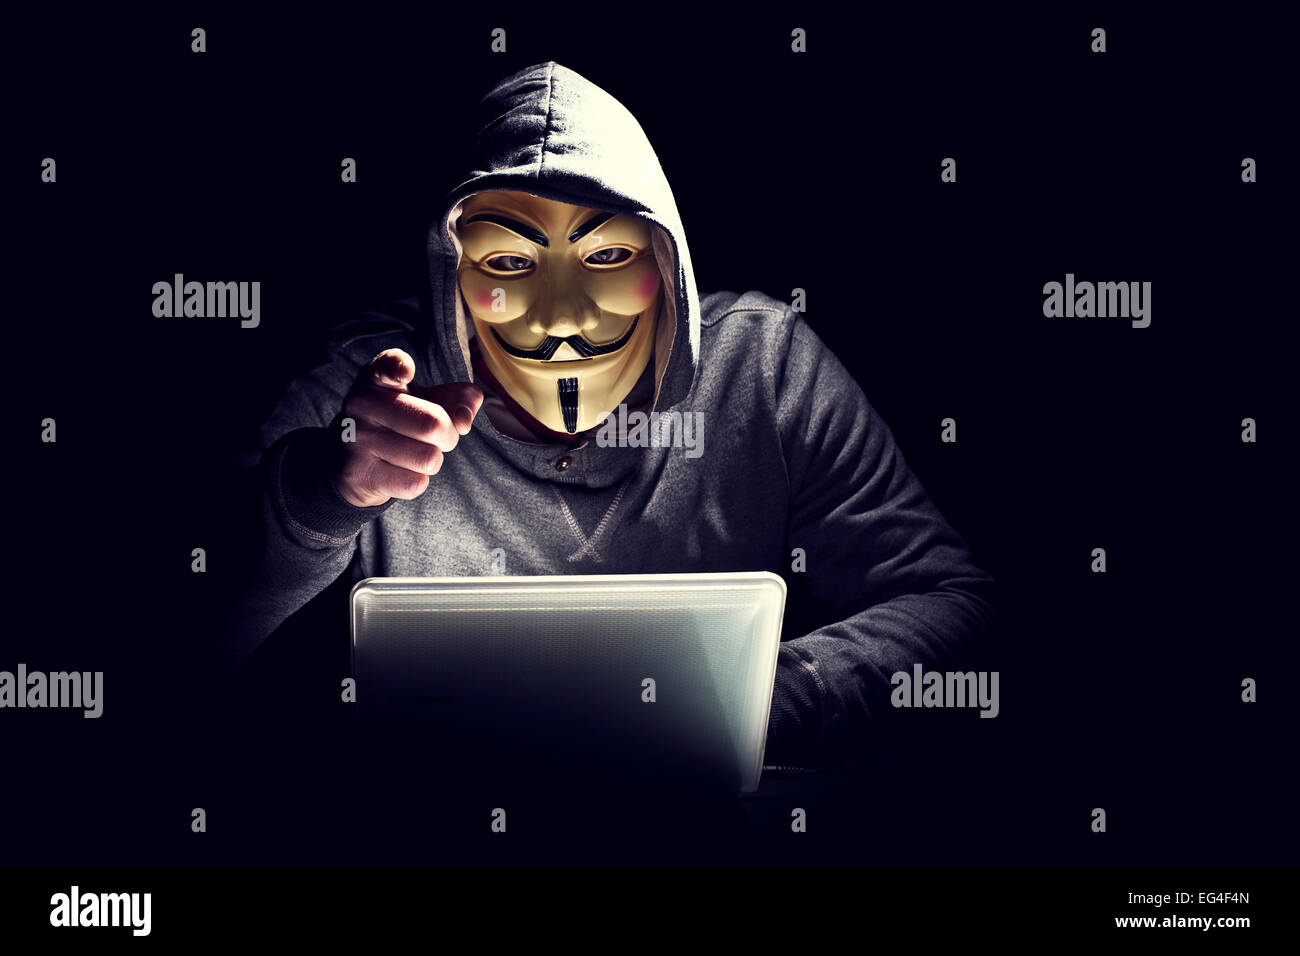 portrait of hacker with mask - Stock Image